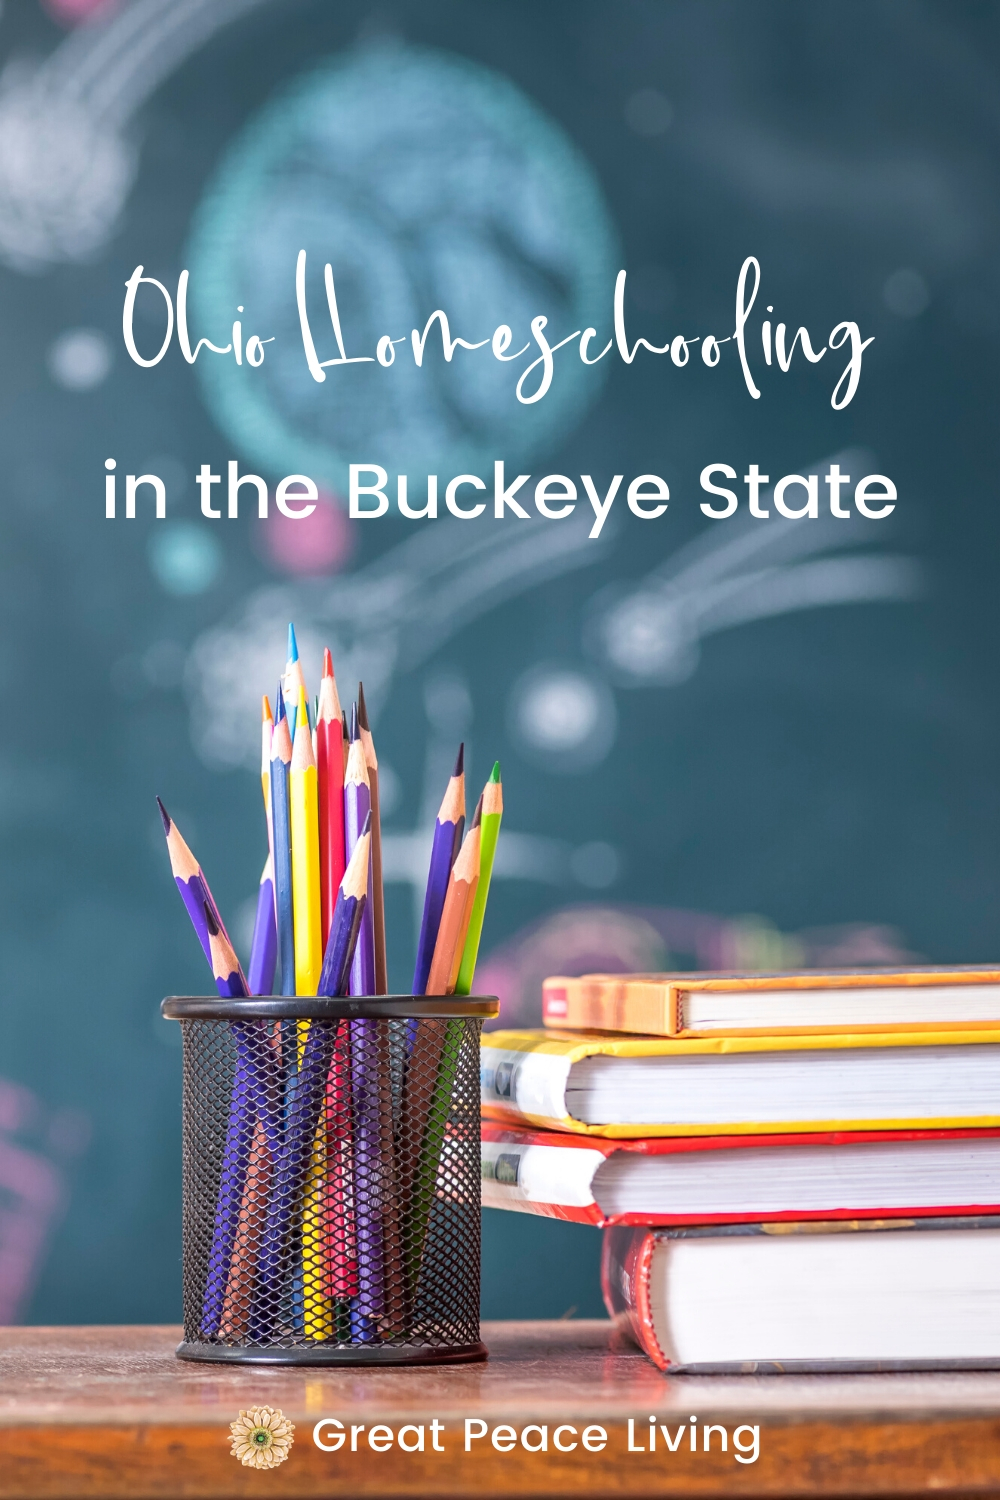 Ohio Homeschooling in the Buckeye State | Great Peace Living #homeschooling #ohiohomeschooling #homeschool #ihsnet